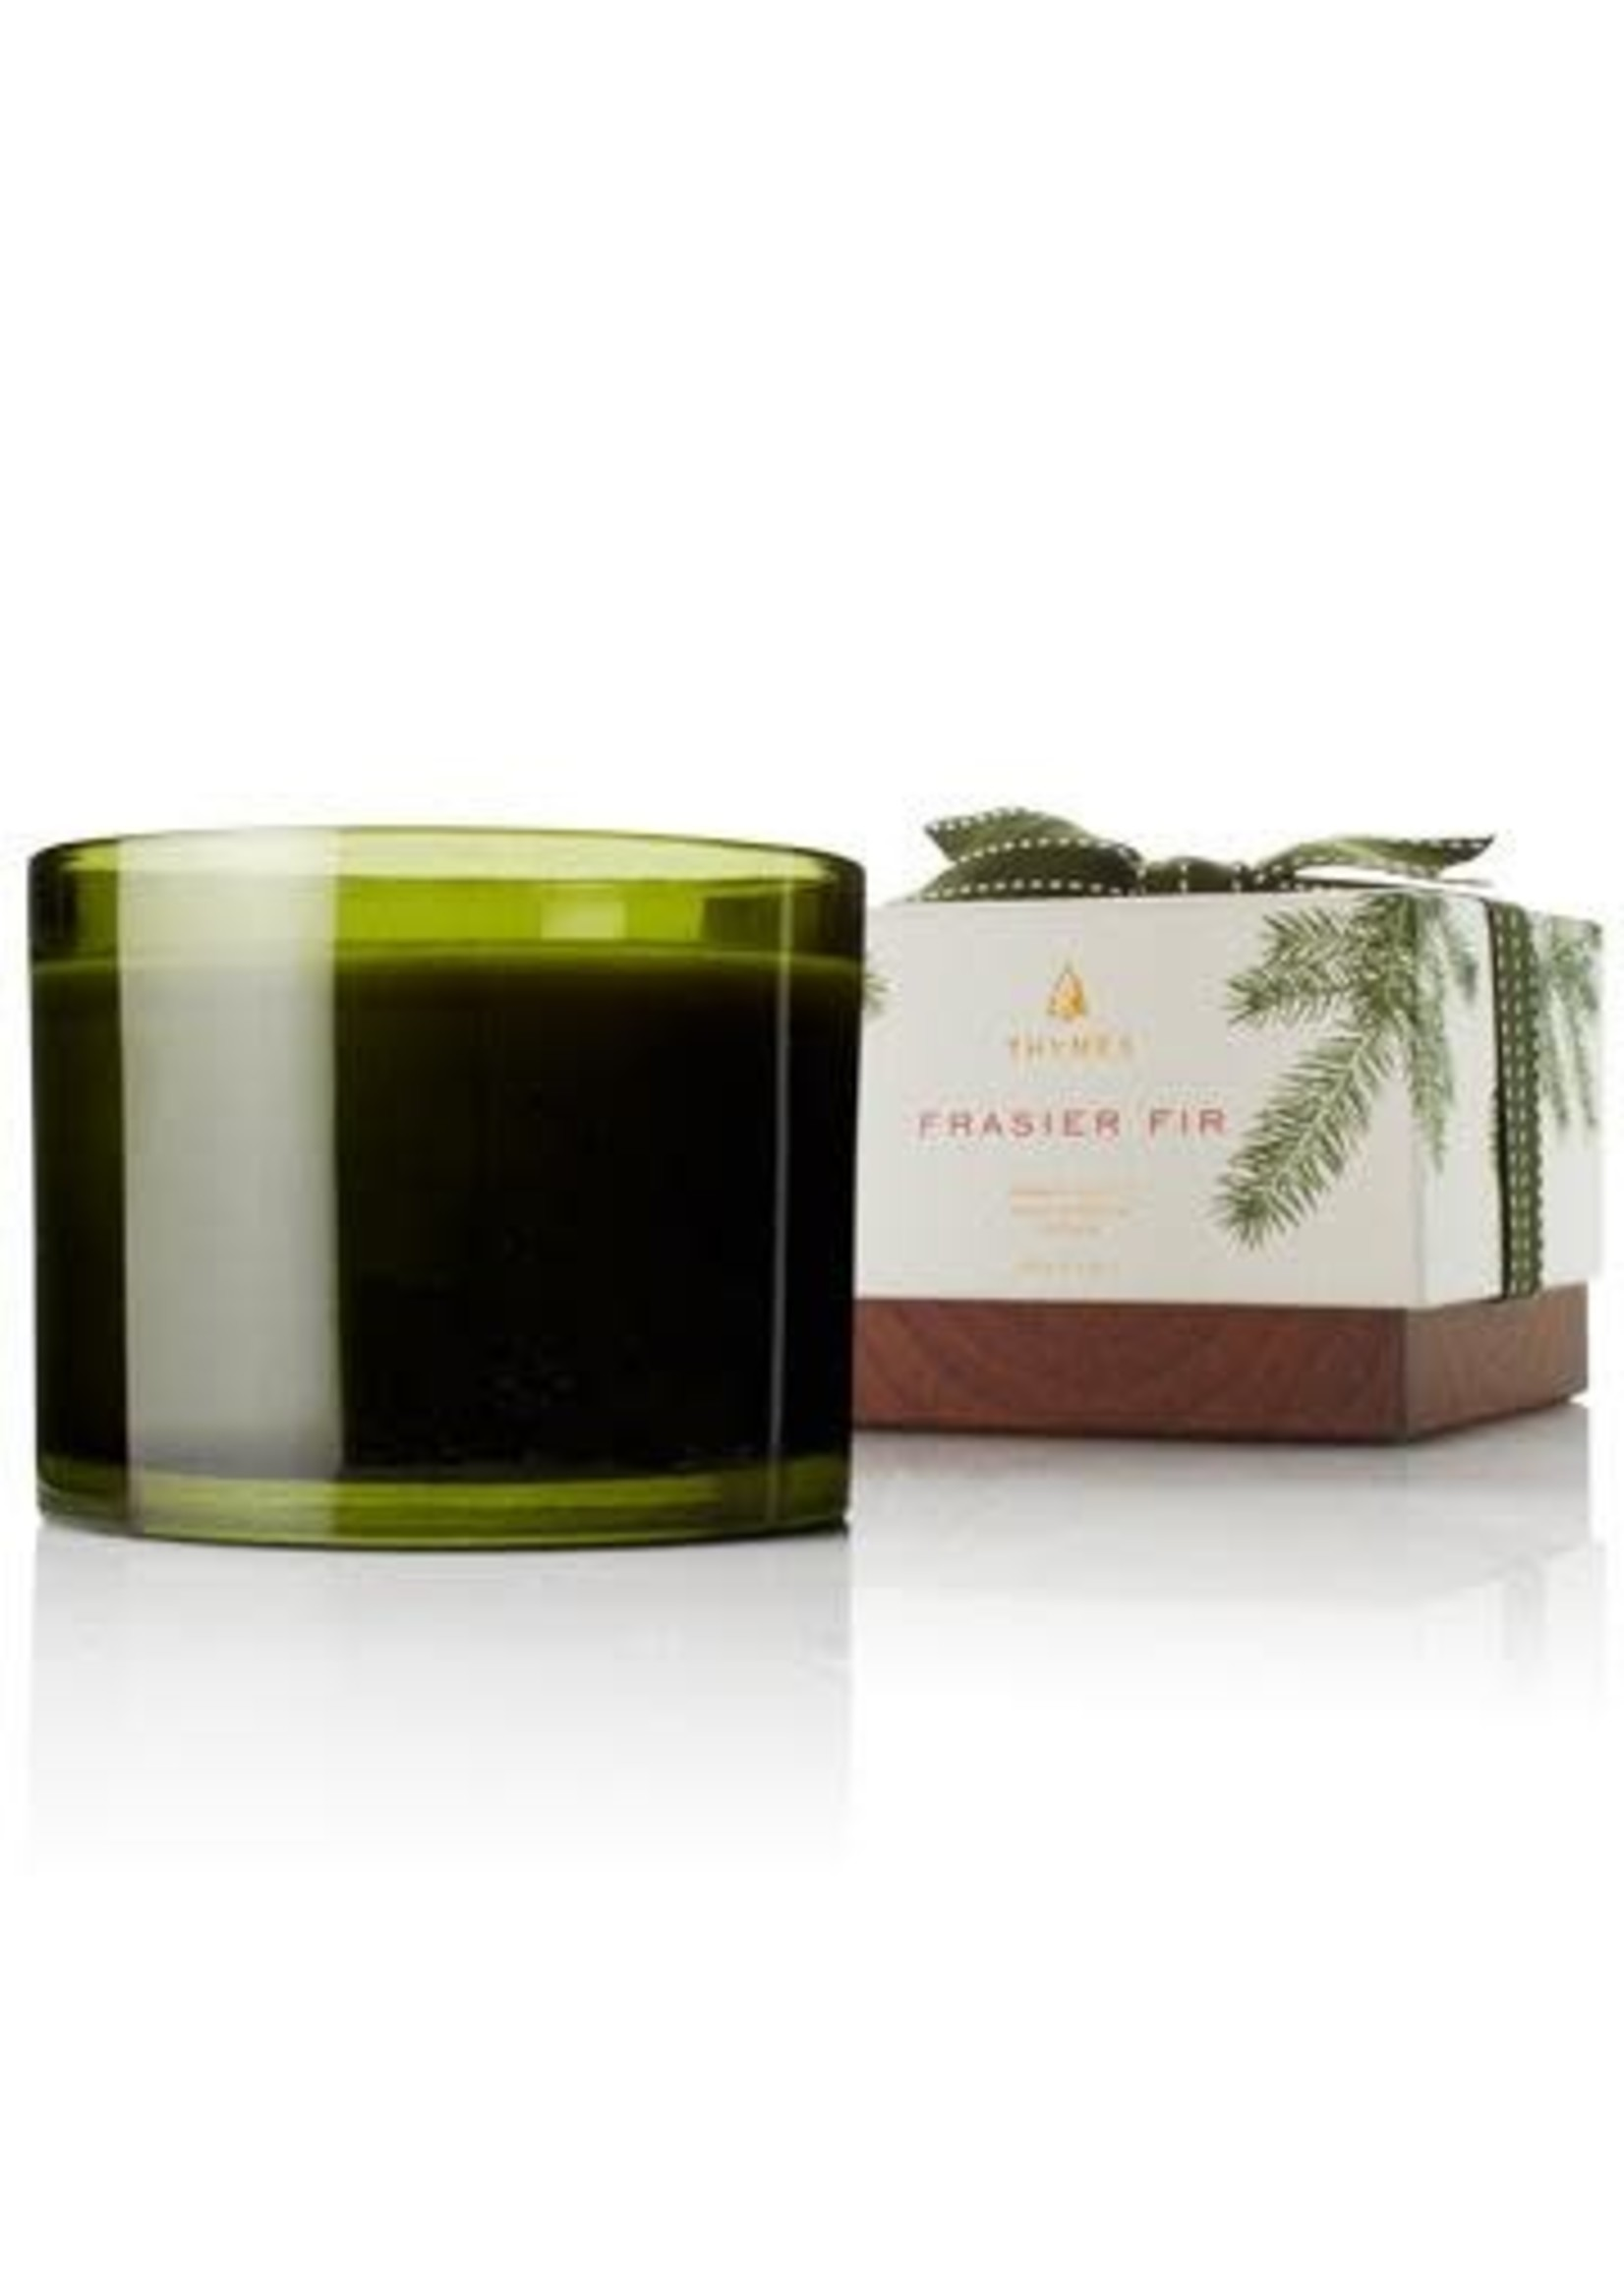 Thymes Frasier Fir Poured Candle - 3 wick